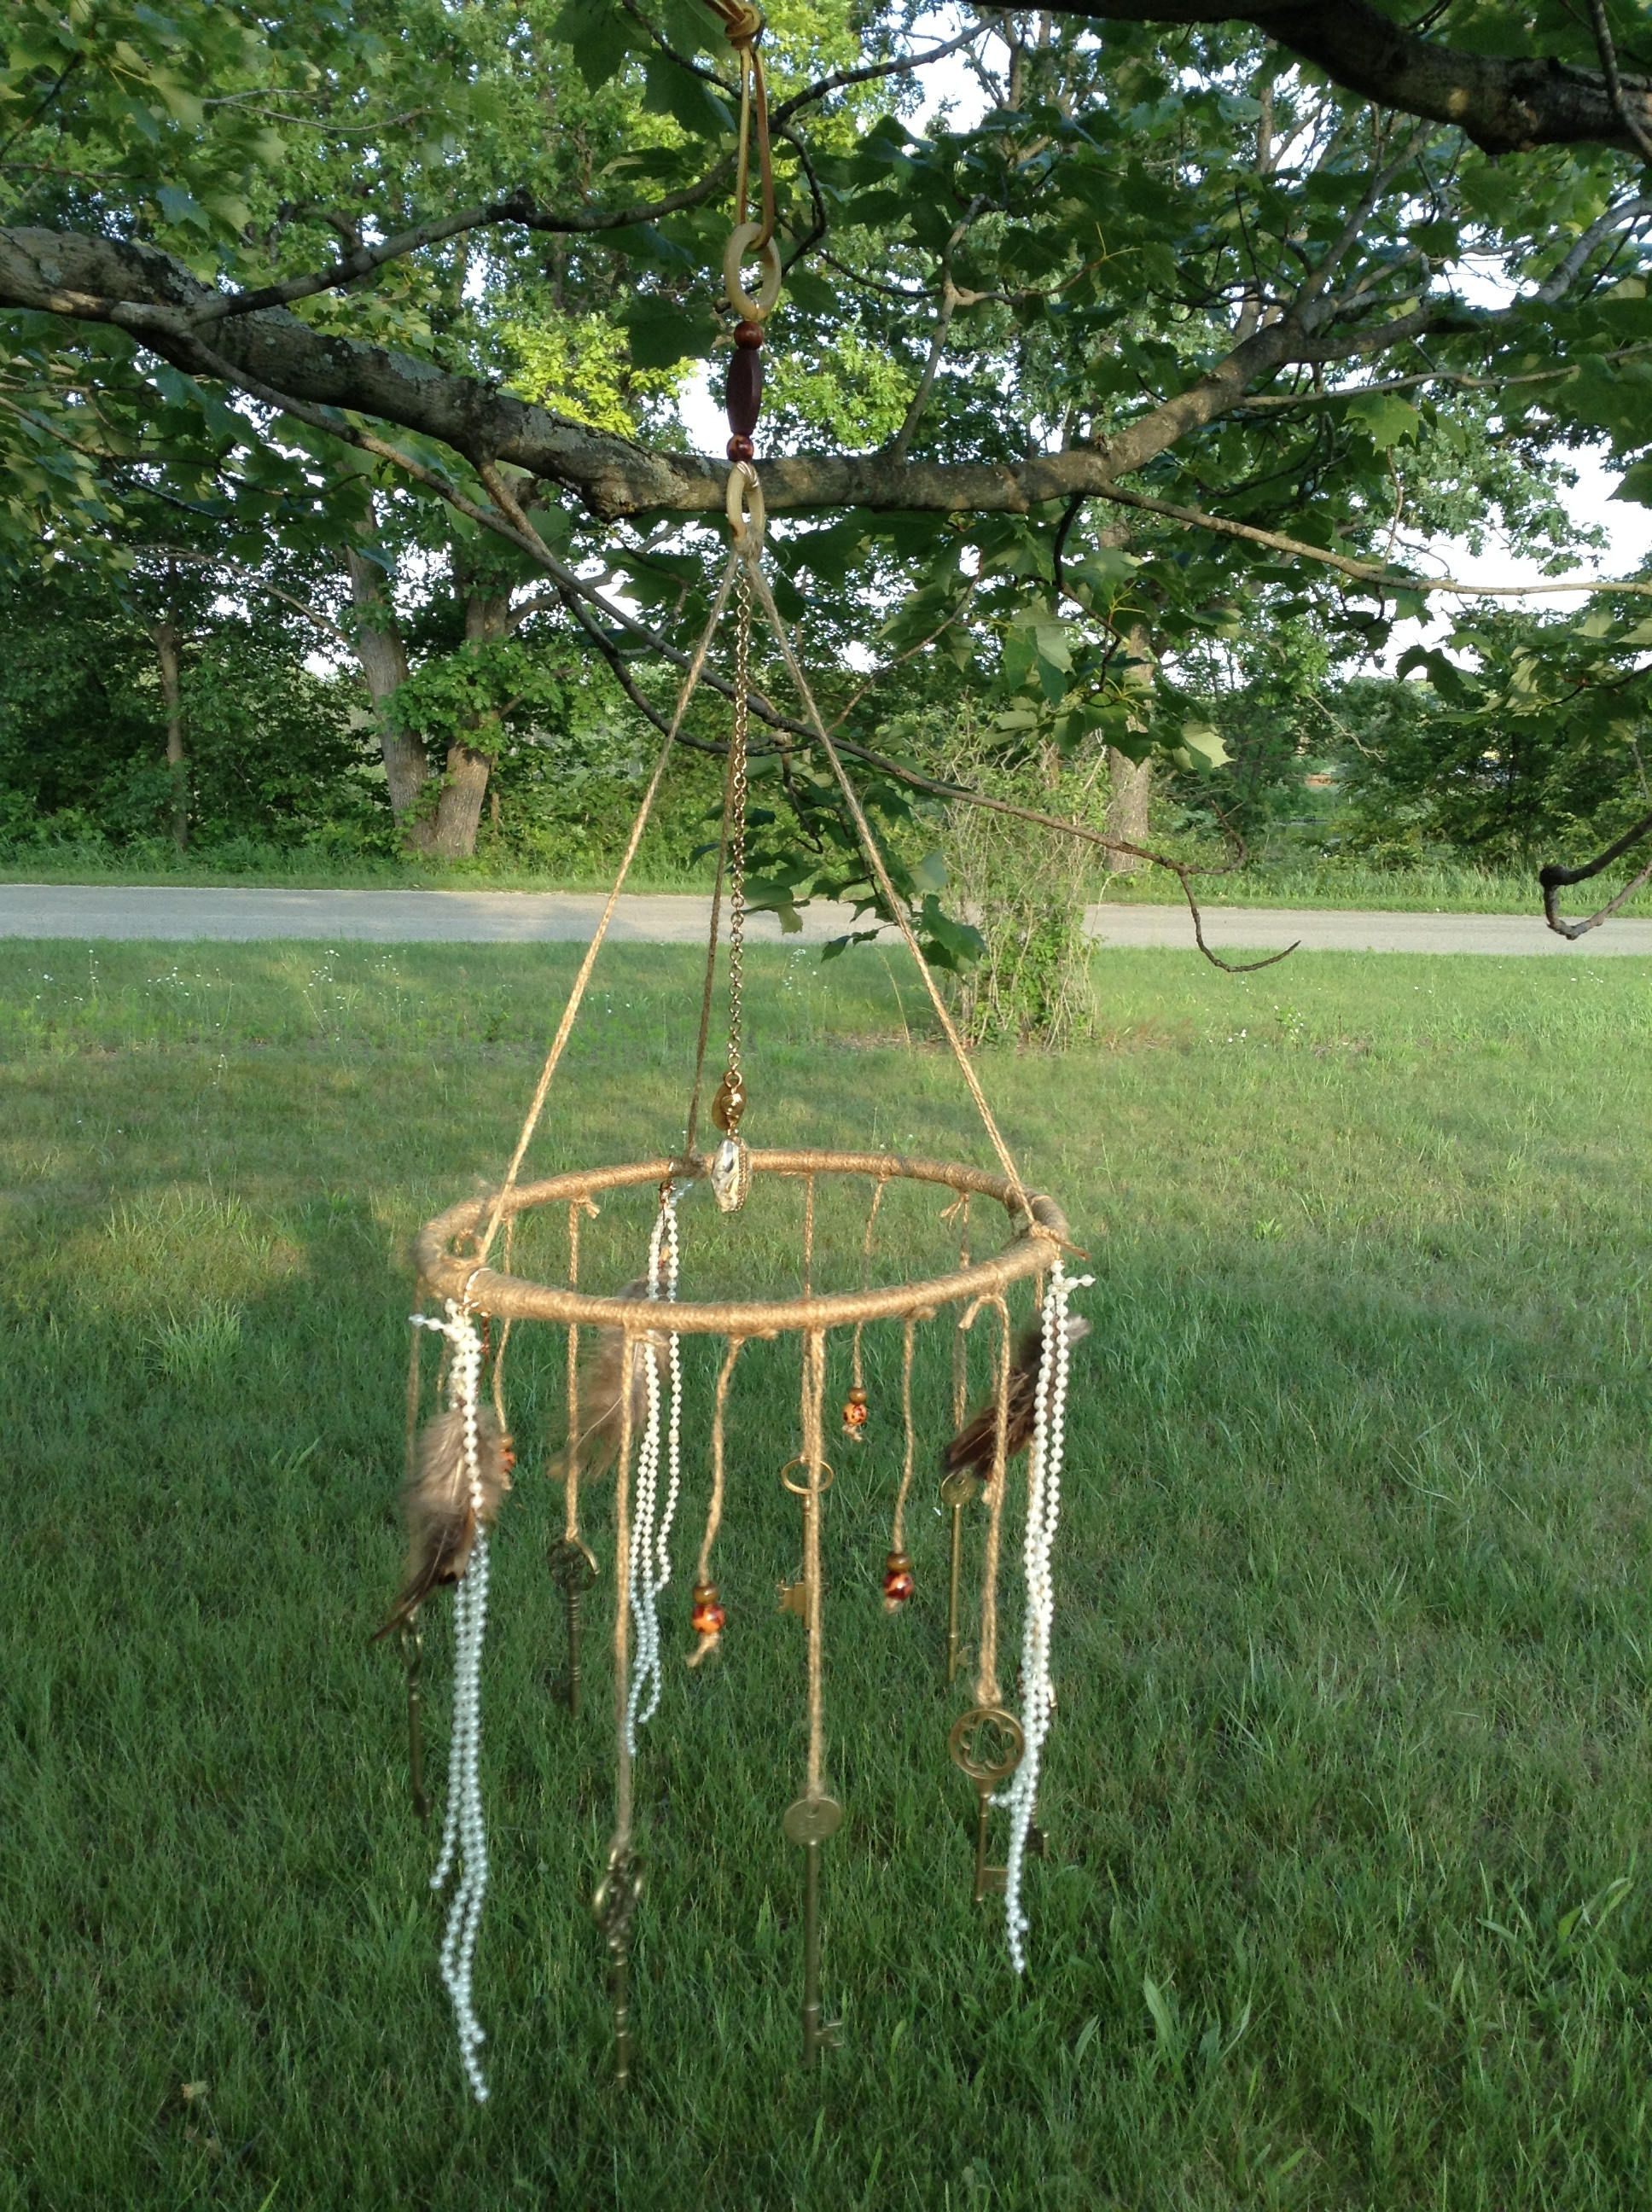 BOHO-GYPSY-WHIMSICAL wind-song, wind chime, upcycle, repurpose ...